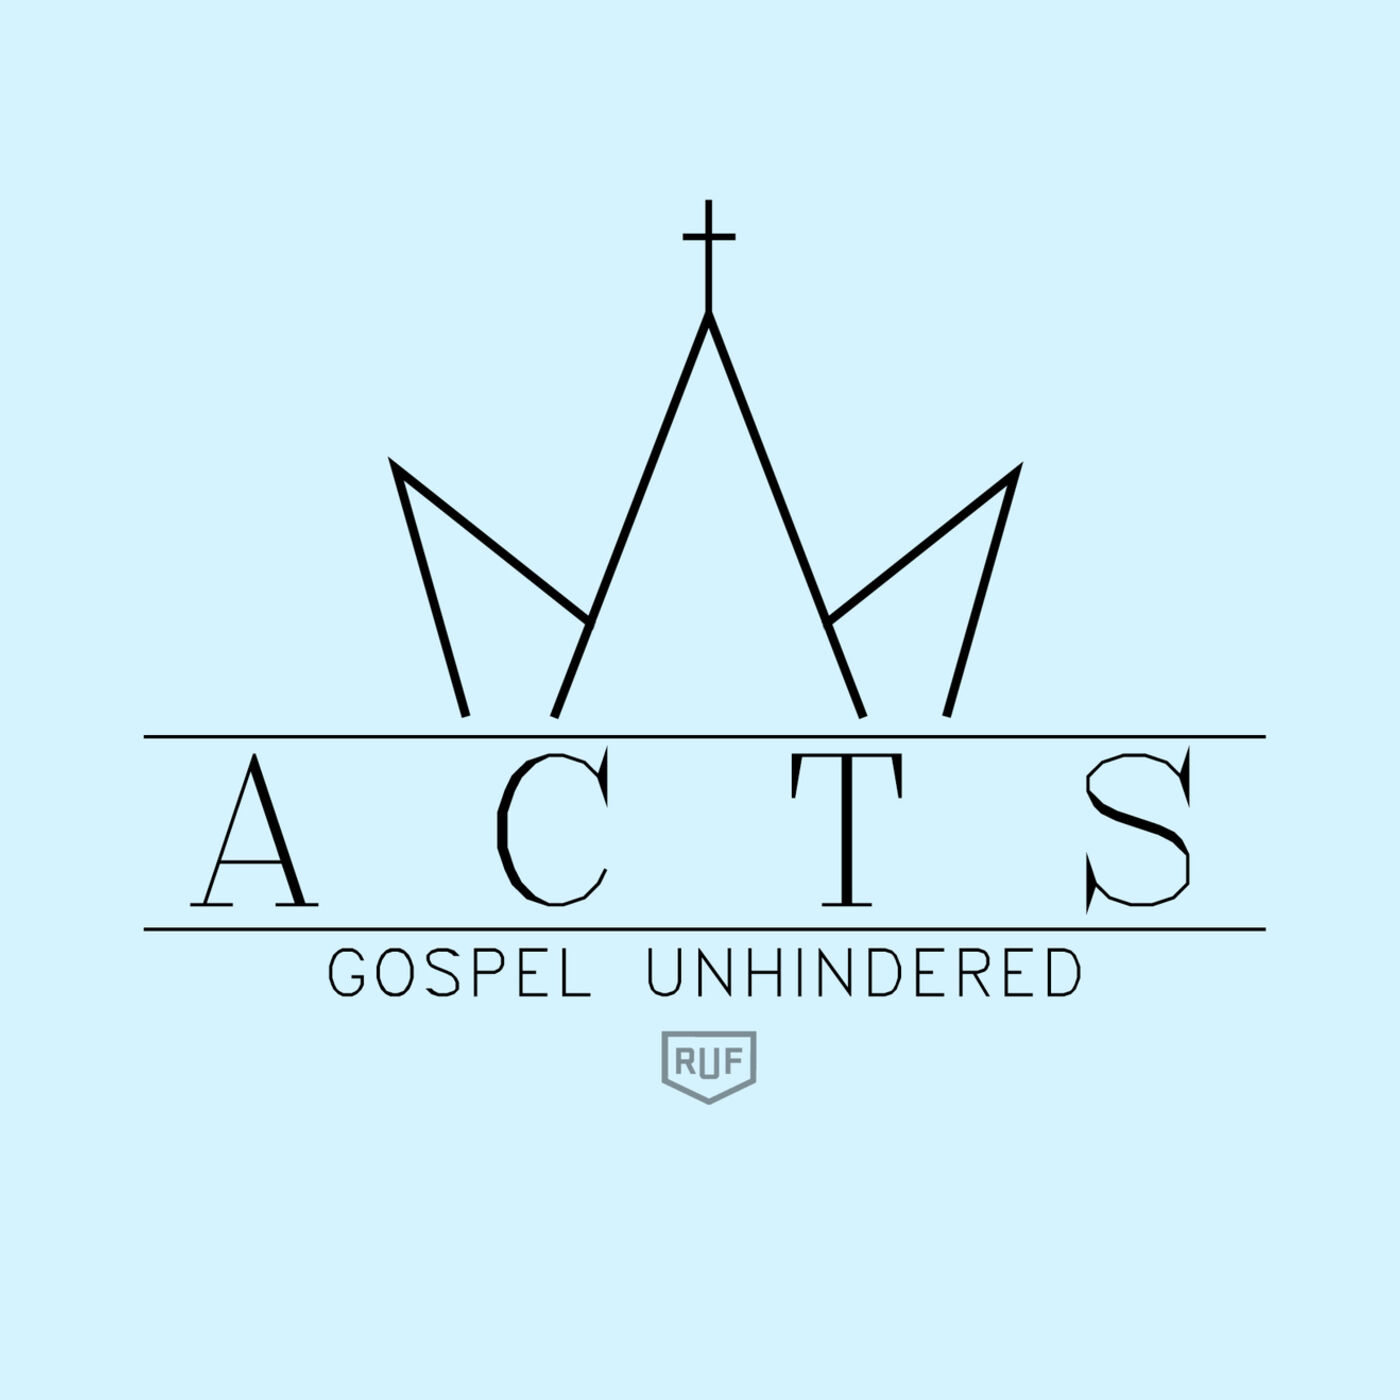 Gospel Unhindered 03 - Acts 2:12-41 - Vital Signs of the Spirit